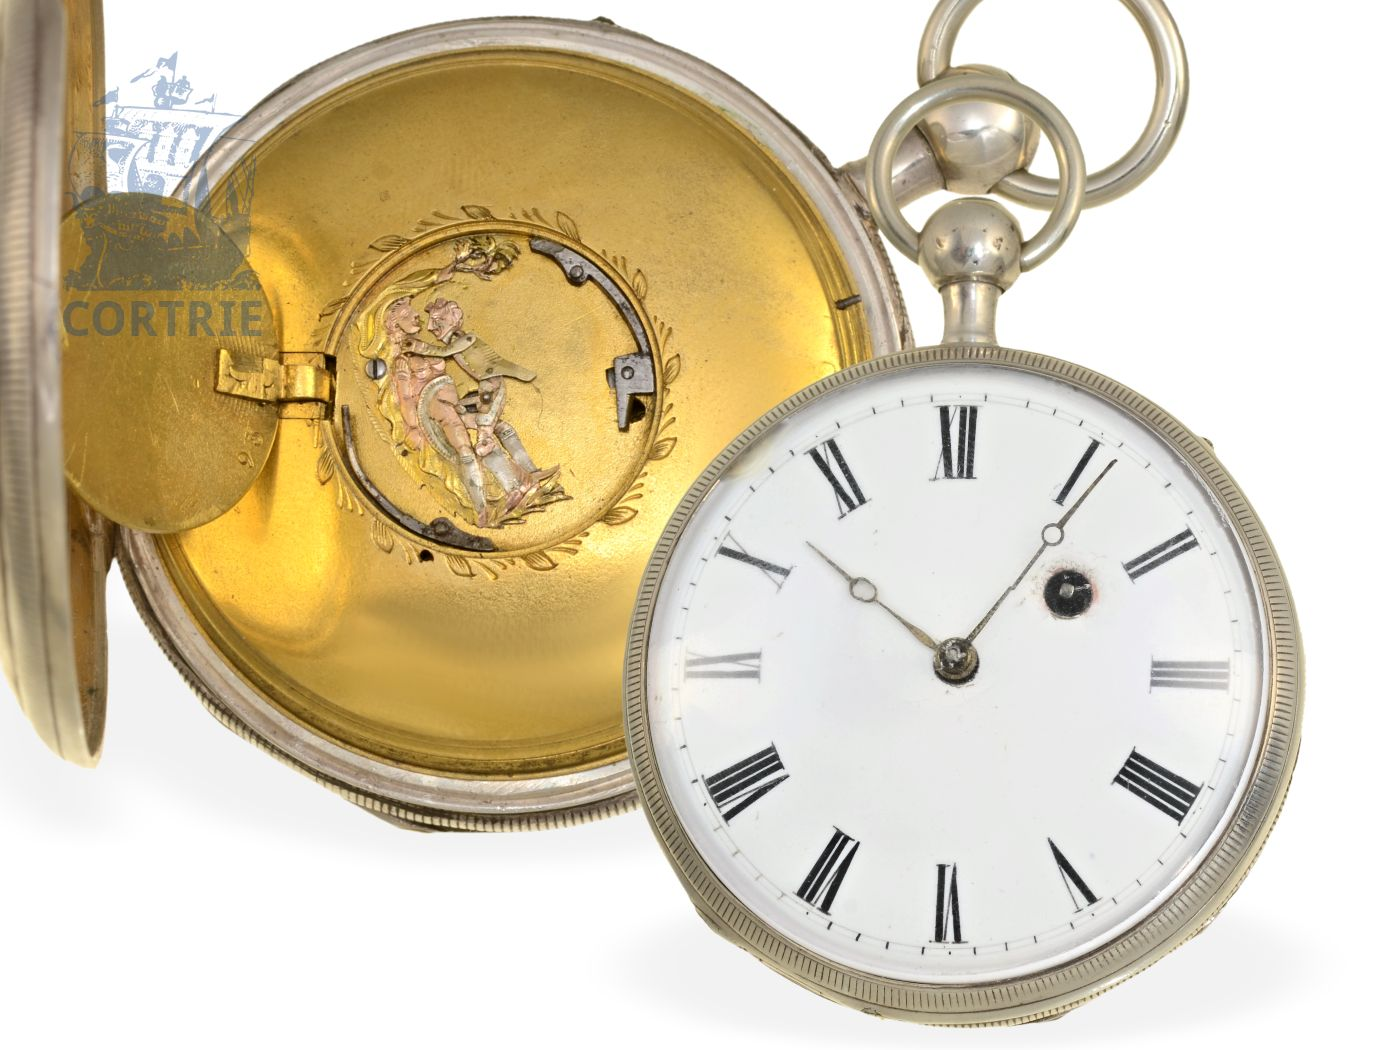 Pocket watch: verge watch repeater with hidden erotic figured automaton, probably France ca. 1820-